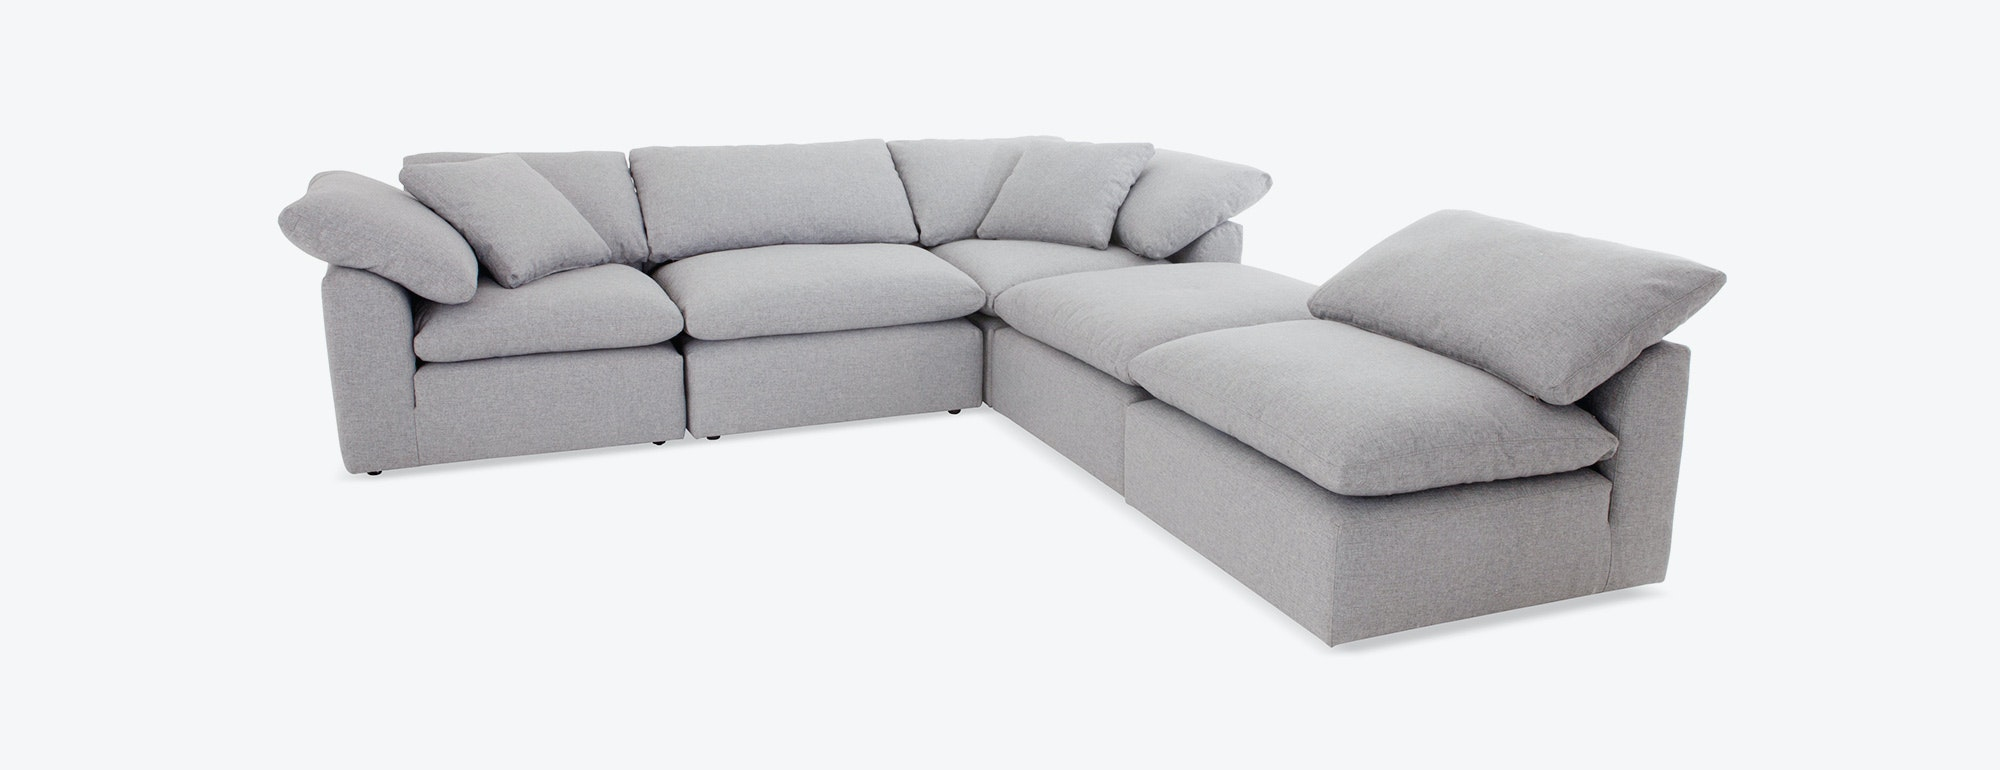 u sofa lazy boy leather sets top 25 best shaped ideas on pinterest couch